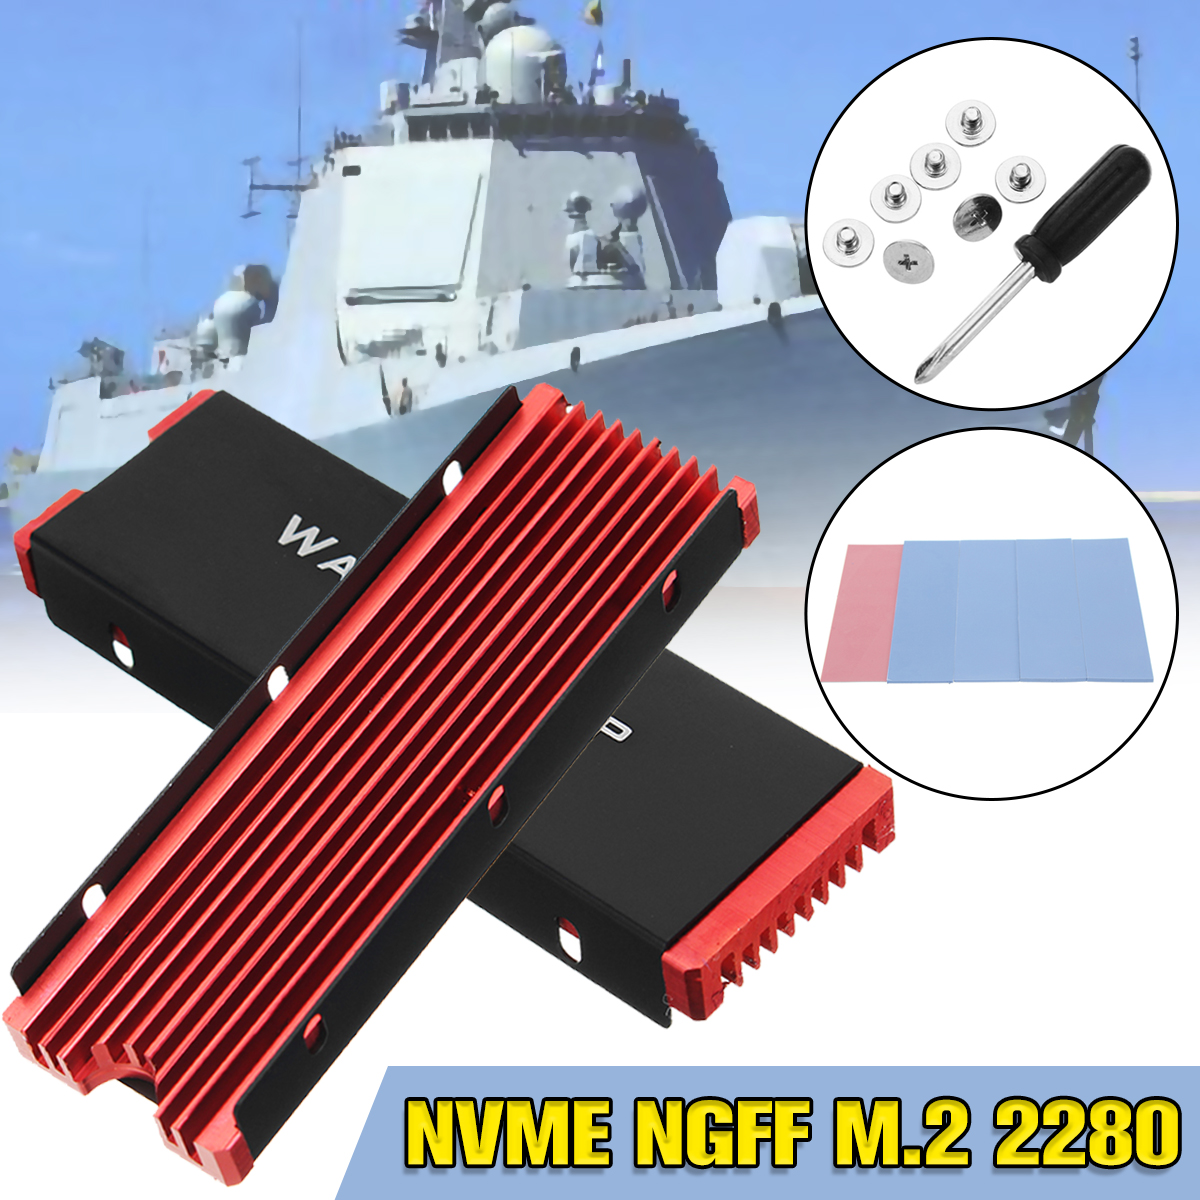 JEYI Cooling Warship Aluminum Sheet Gold Bar Dust-proof NVME NGFF M.2 2280 Thermal Conductivity Silicon Wafer CoolingJEYI Cooling Warship Aluminum Sheet Gold Bar Dust-proof NVME NGFF M.2 2280 Thermal Conductivity Silicon Wafer Cooling